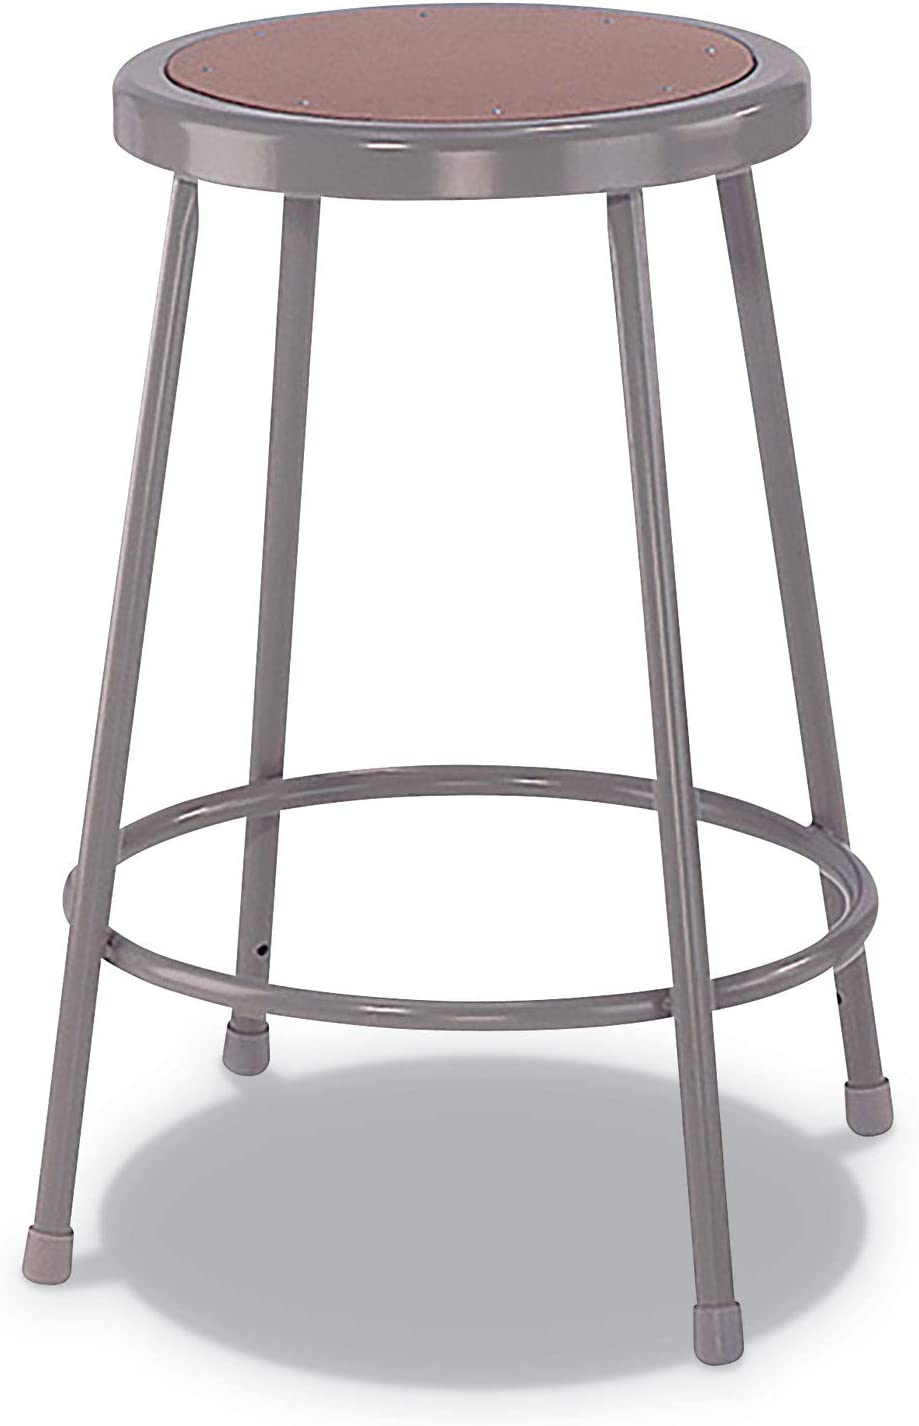 Alera IS6624G Industrial Metal Shop Stool, 24-Inch Seat Ht, Supports 300 lbs, Brown Seat,Gray Back/Base